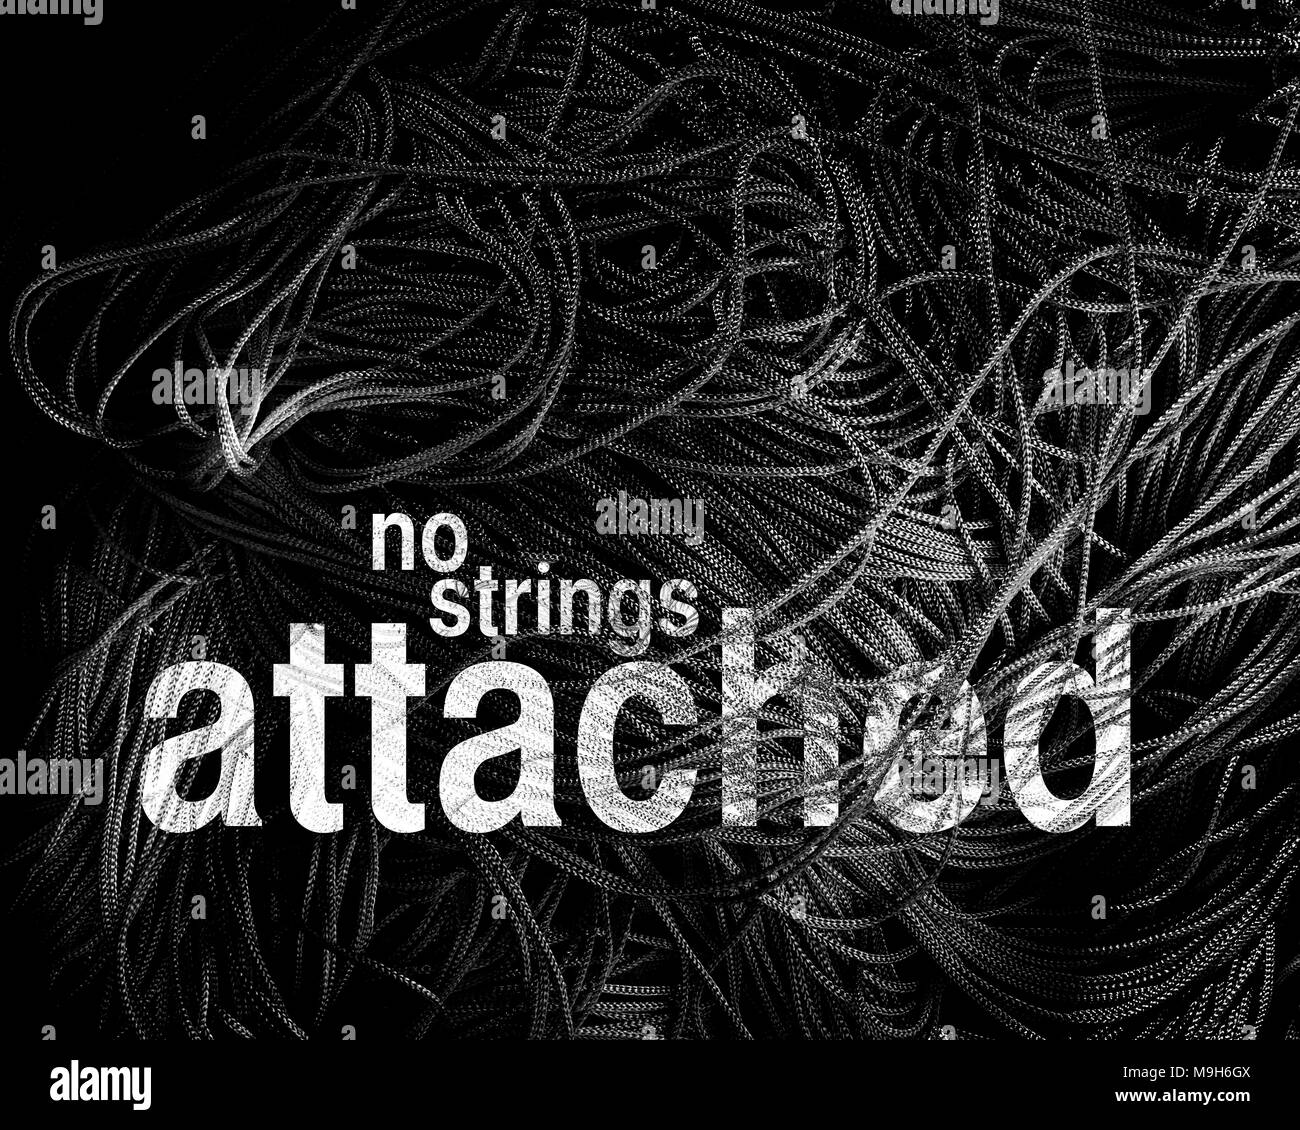 CONCEPT: No Strings Attached - Stock Image